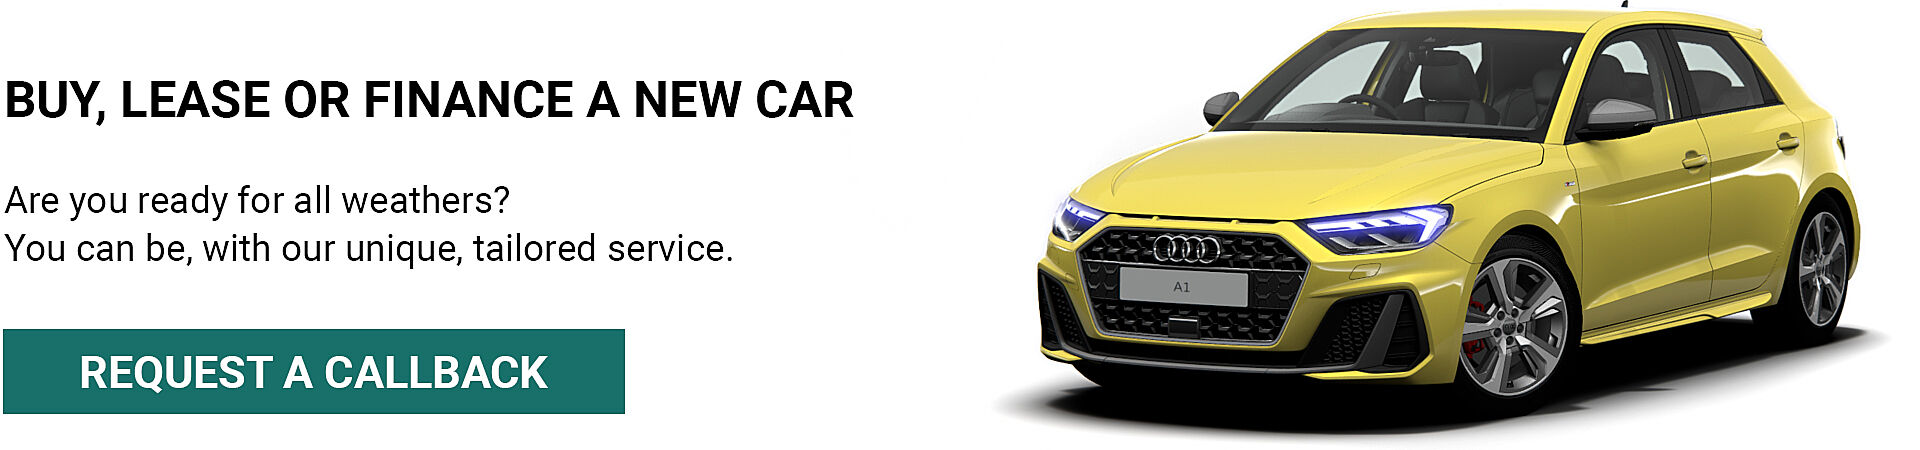 Buy, lease or finance a new car